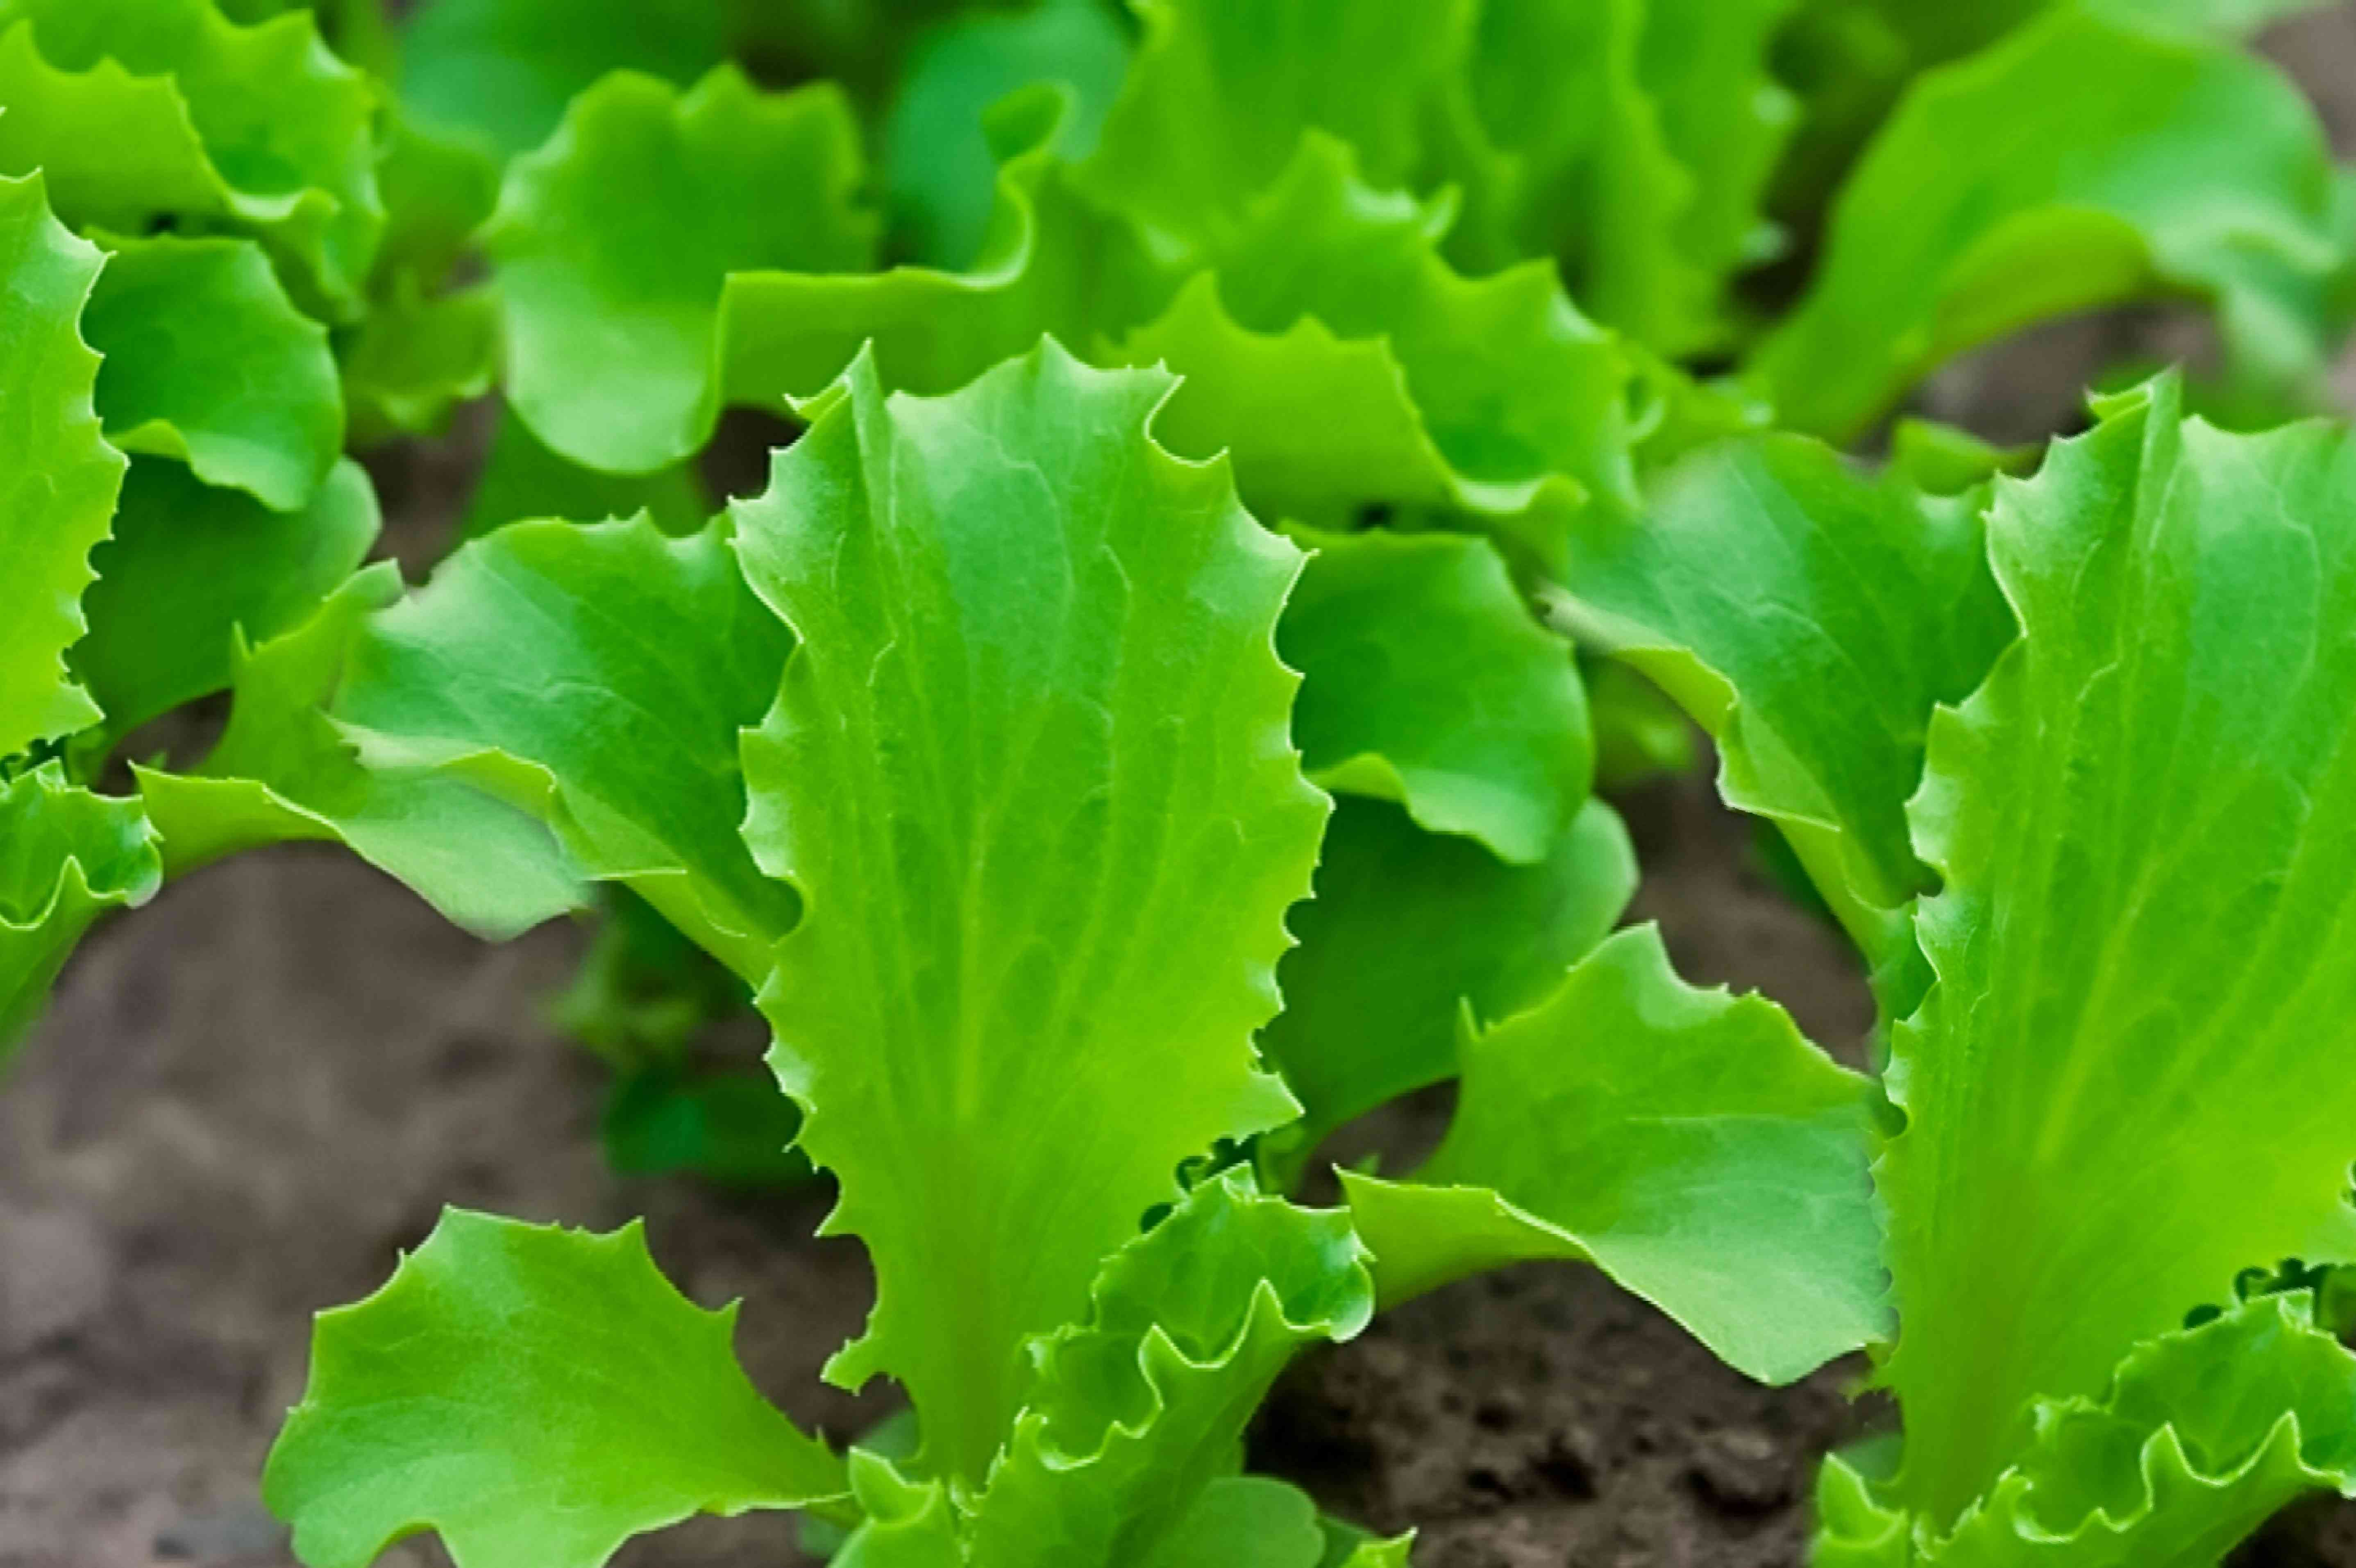 basal leaves, at the base of lettuce crops